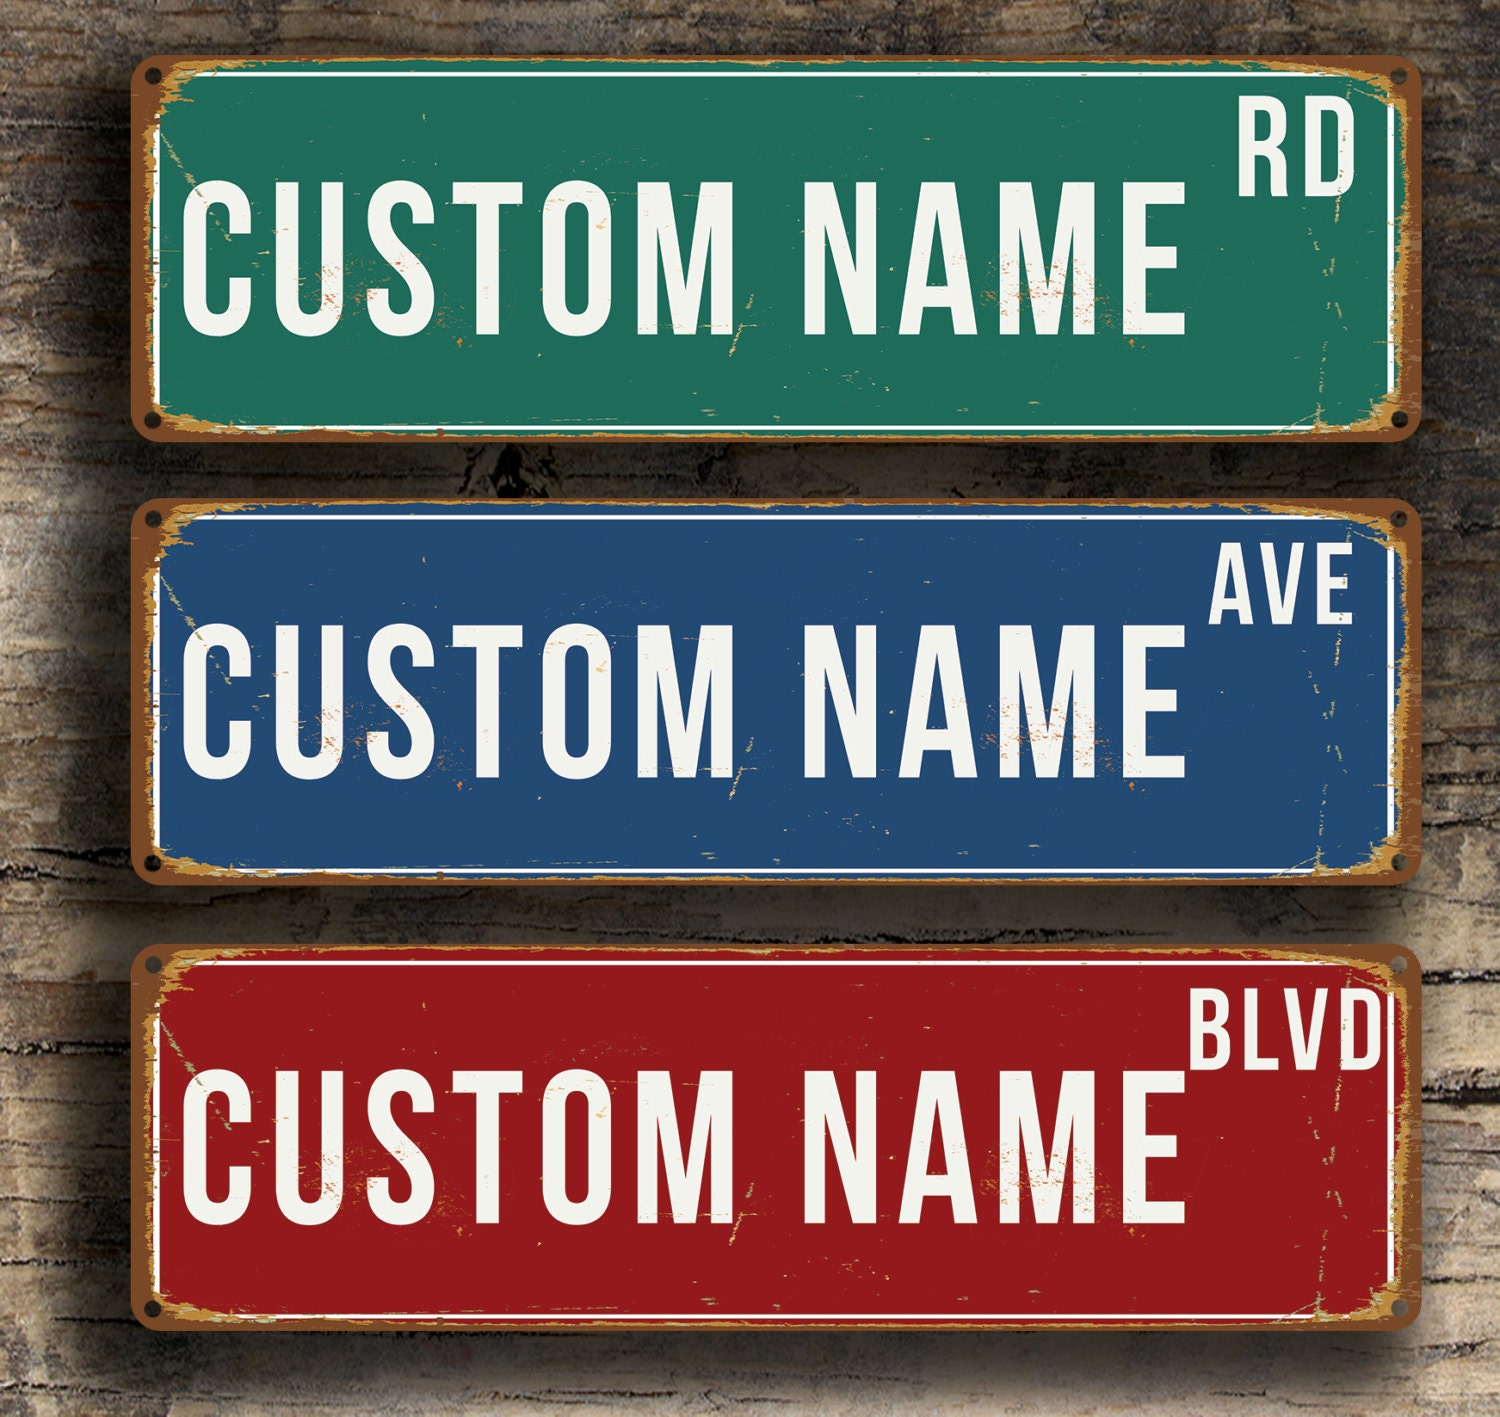 Pin by Susan Daddow on For the Home  Pinterest  Signs